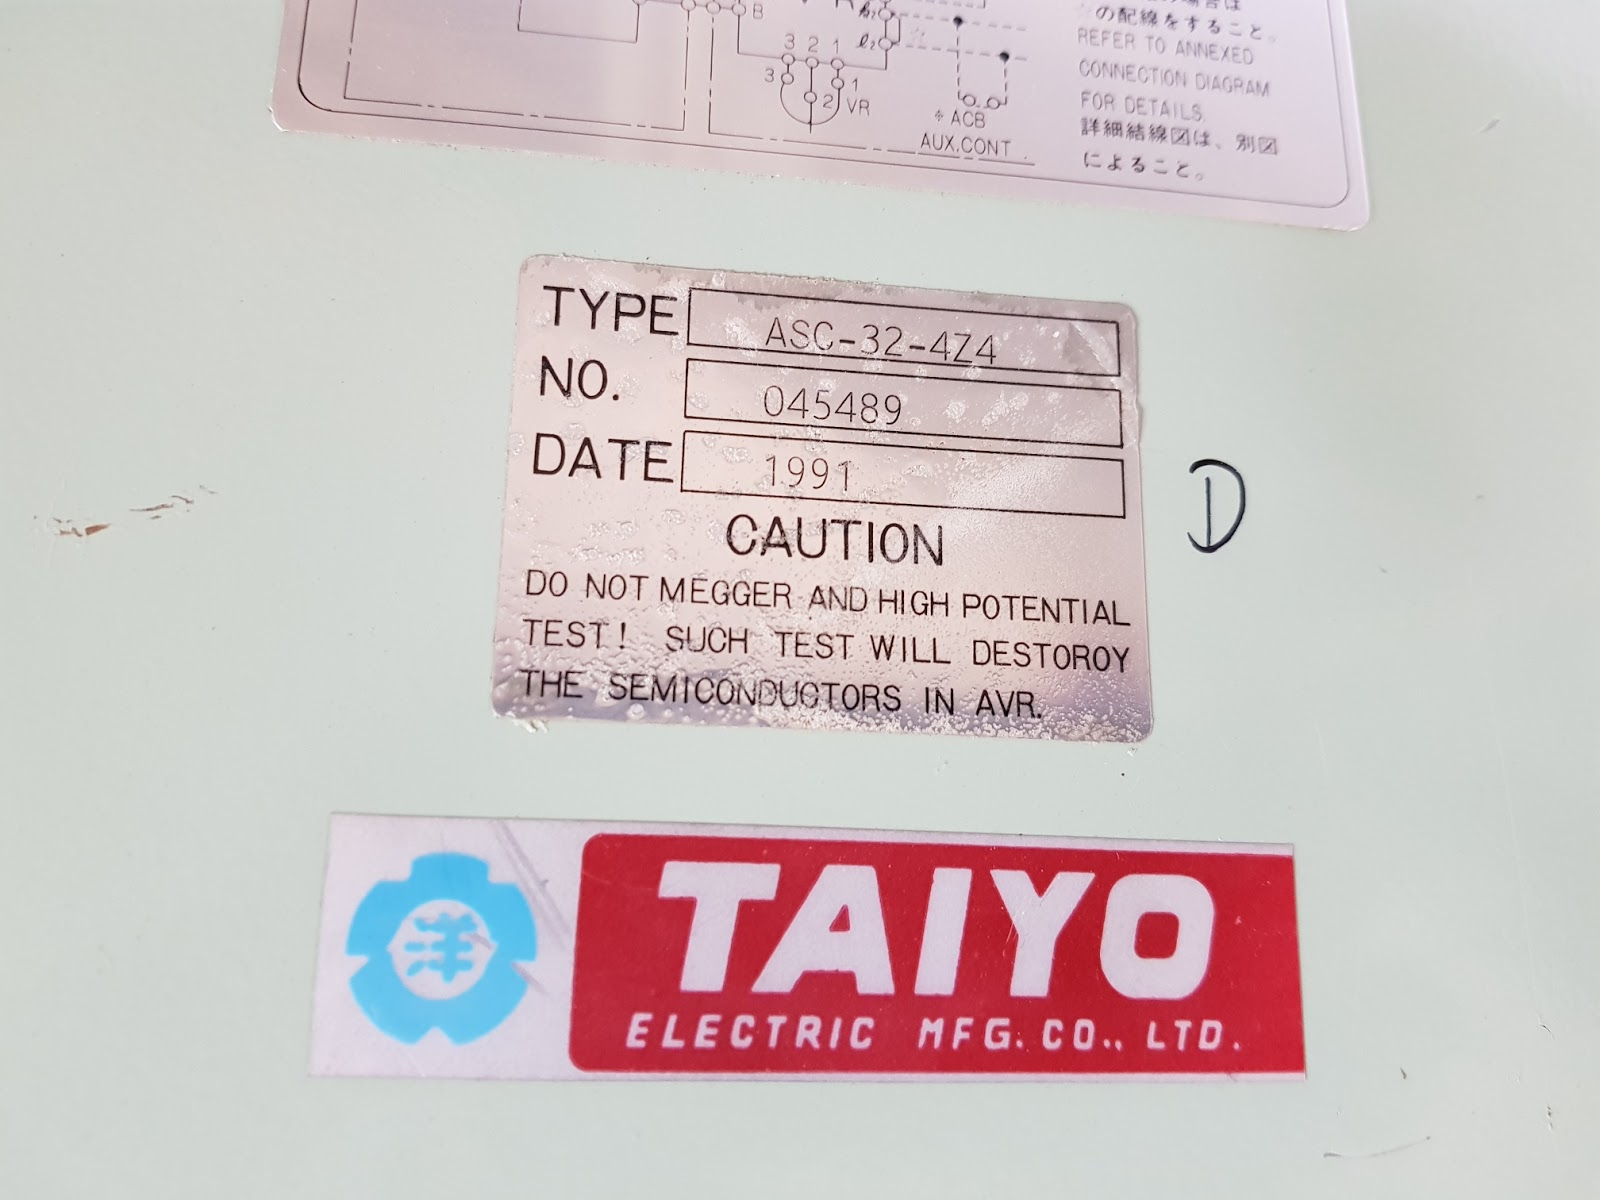 hight resolution of taiyo automatic voltage regulator asc 32 4z4 type asc 32 4z4 serial no 045489 date 1998 1991 1996 mfg by taiyo electric co ltd